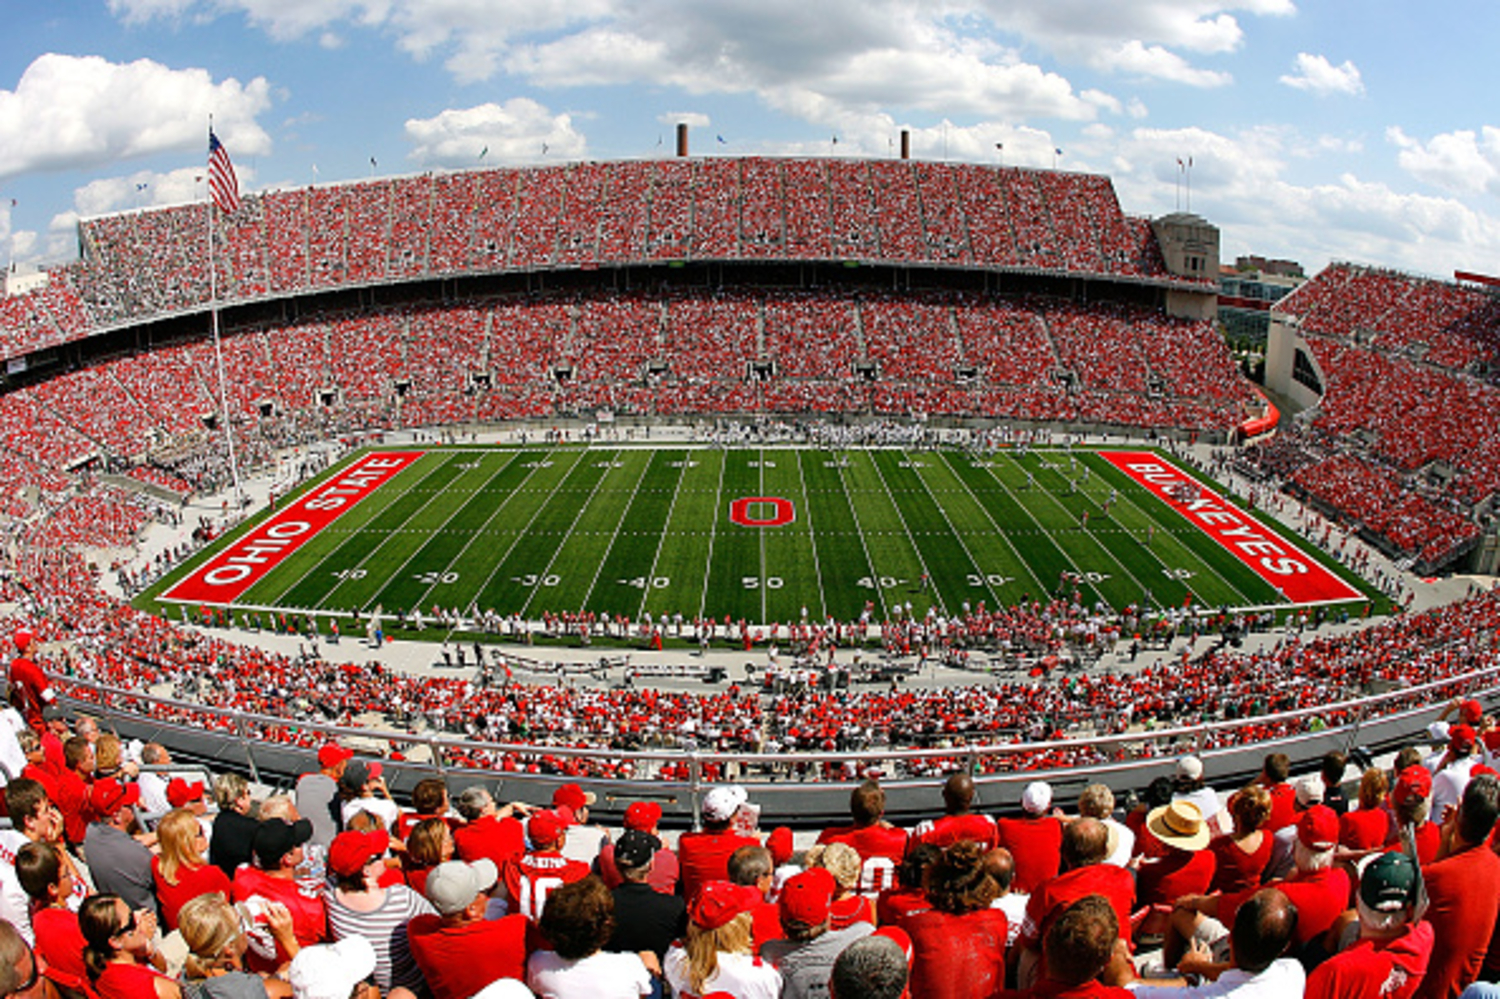 Ohio State football team maybe in jeopardy